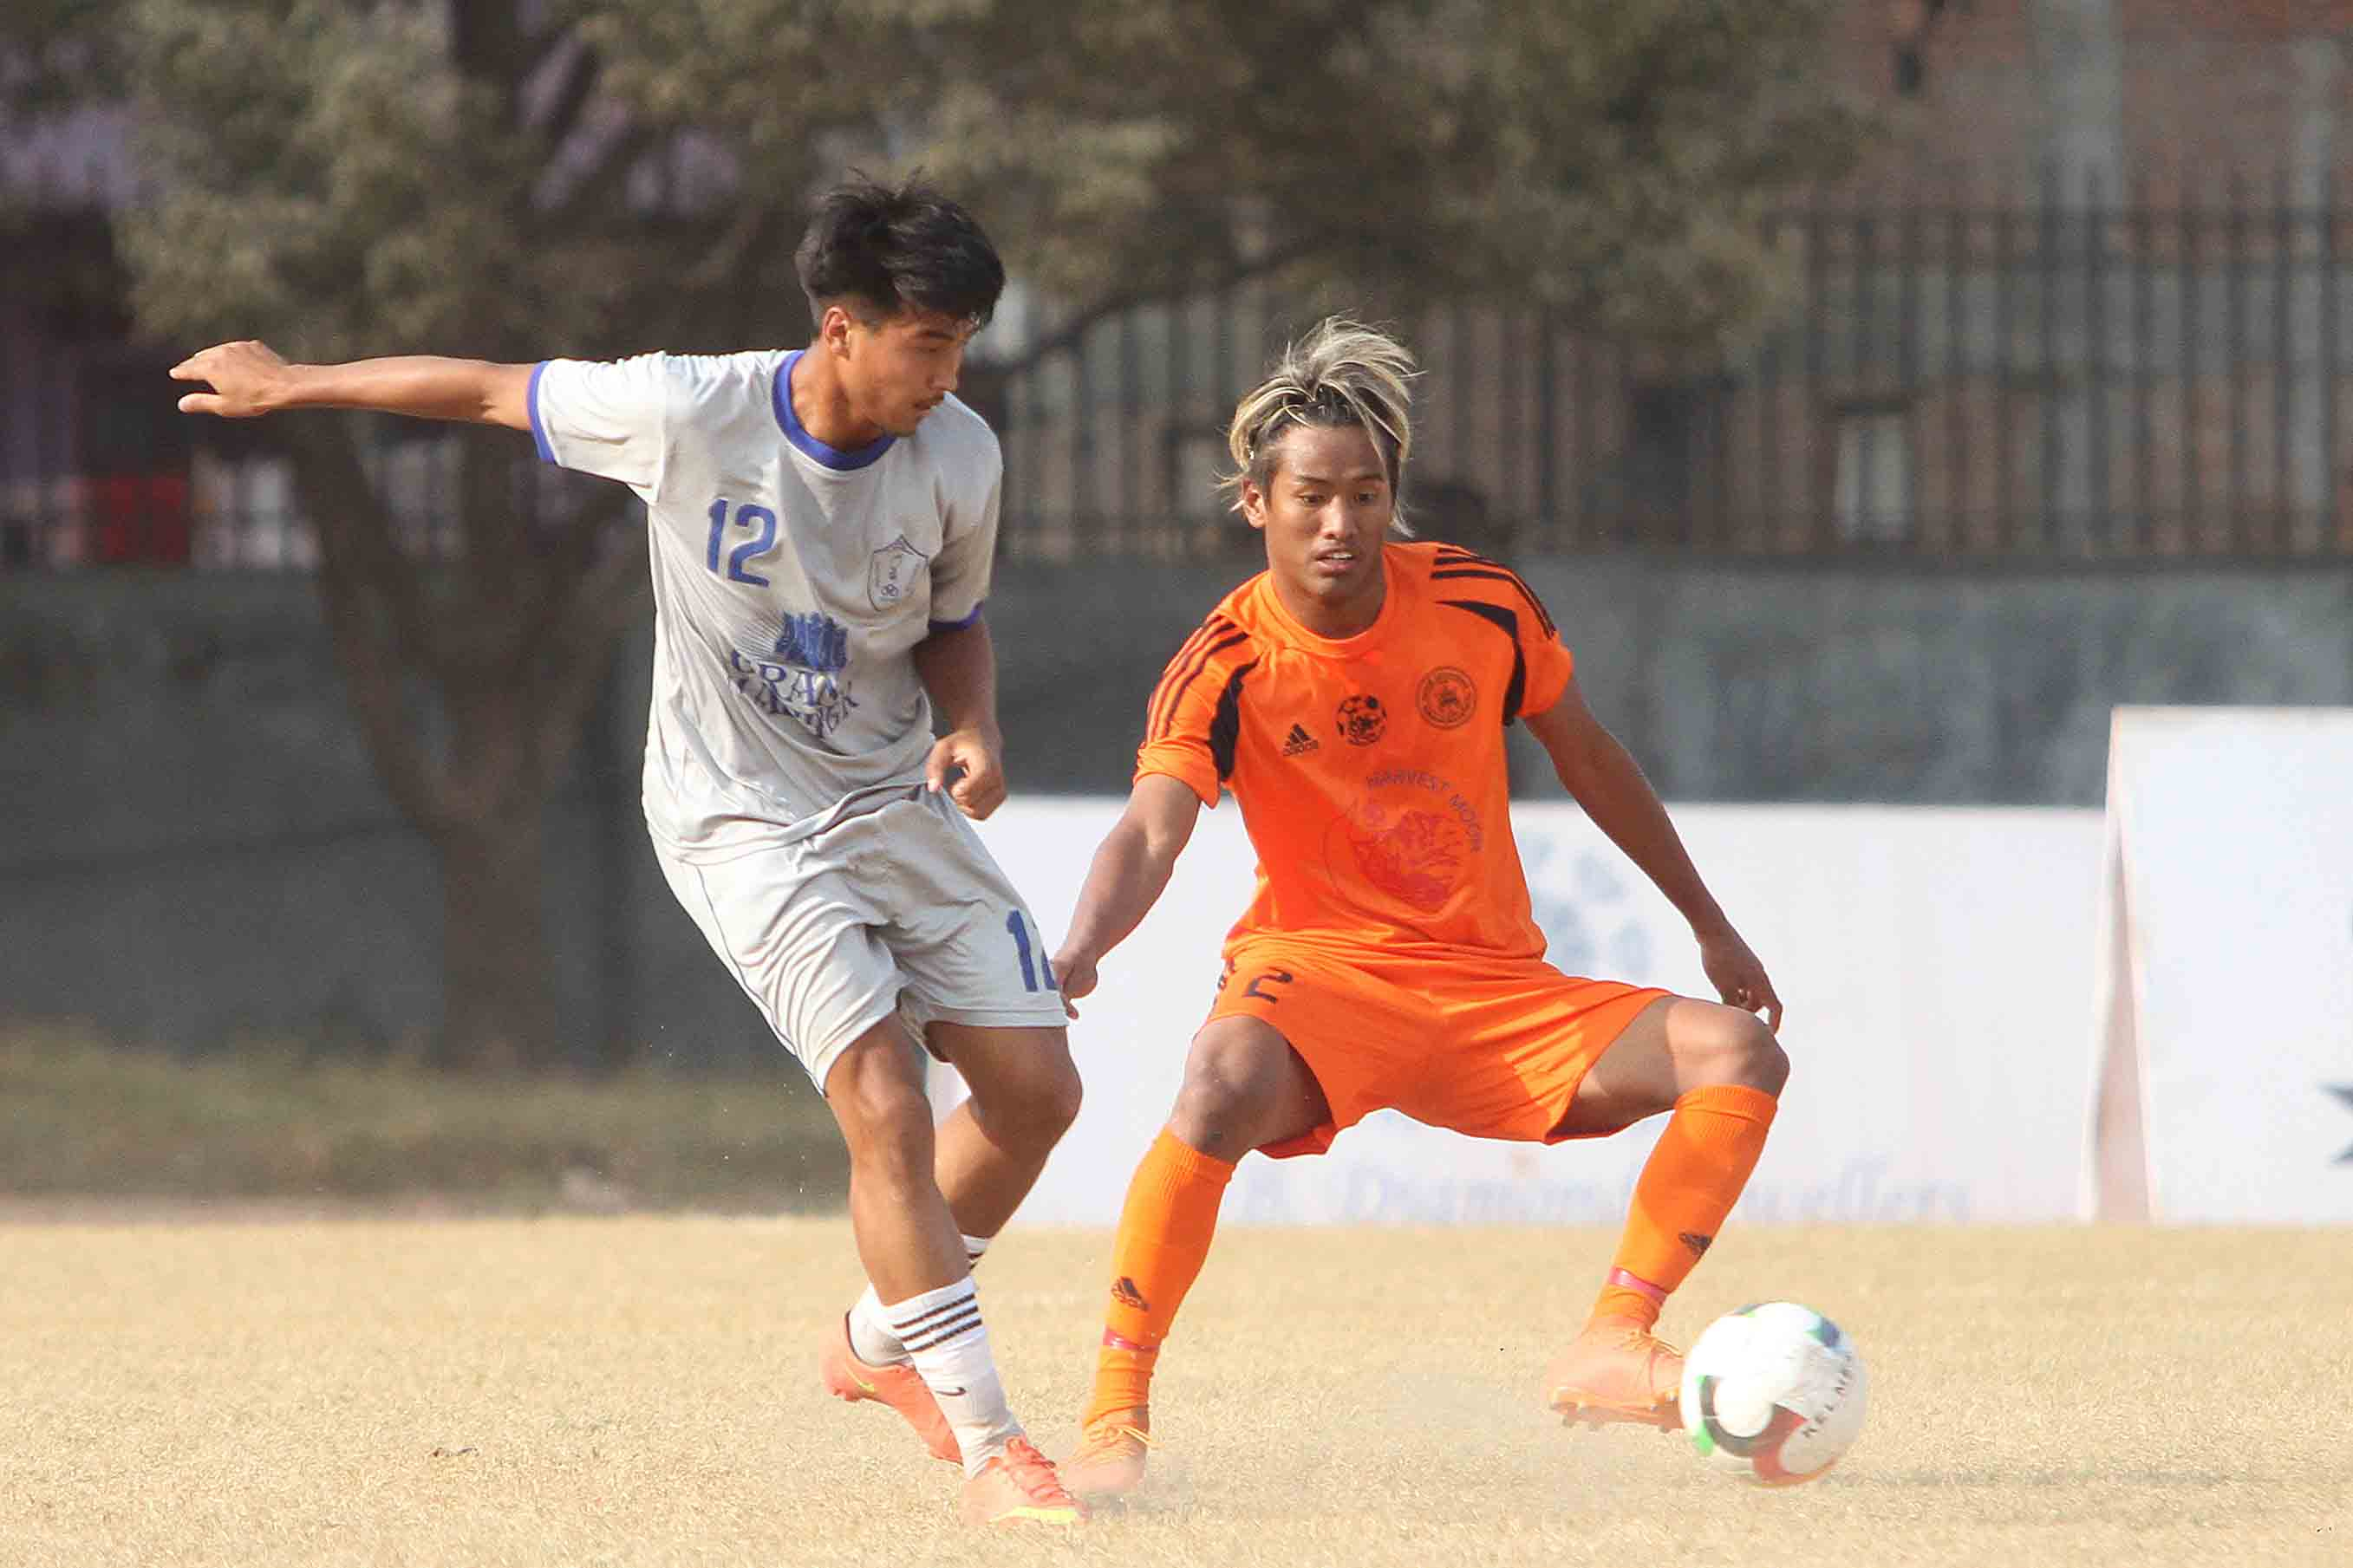 Arju Singh (left) of Jawalakhel Youth Club and Asish Gurung of Himalayan Sherpa Club vie for the ball during their Pulsar Martyru2019s Memorial u2018Au2019 Division League match at APF Football Ground in Kathmandu on Saturday. Photo: Udipt Singh Chhetry